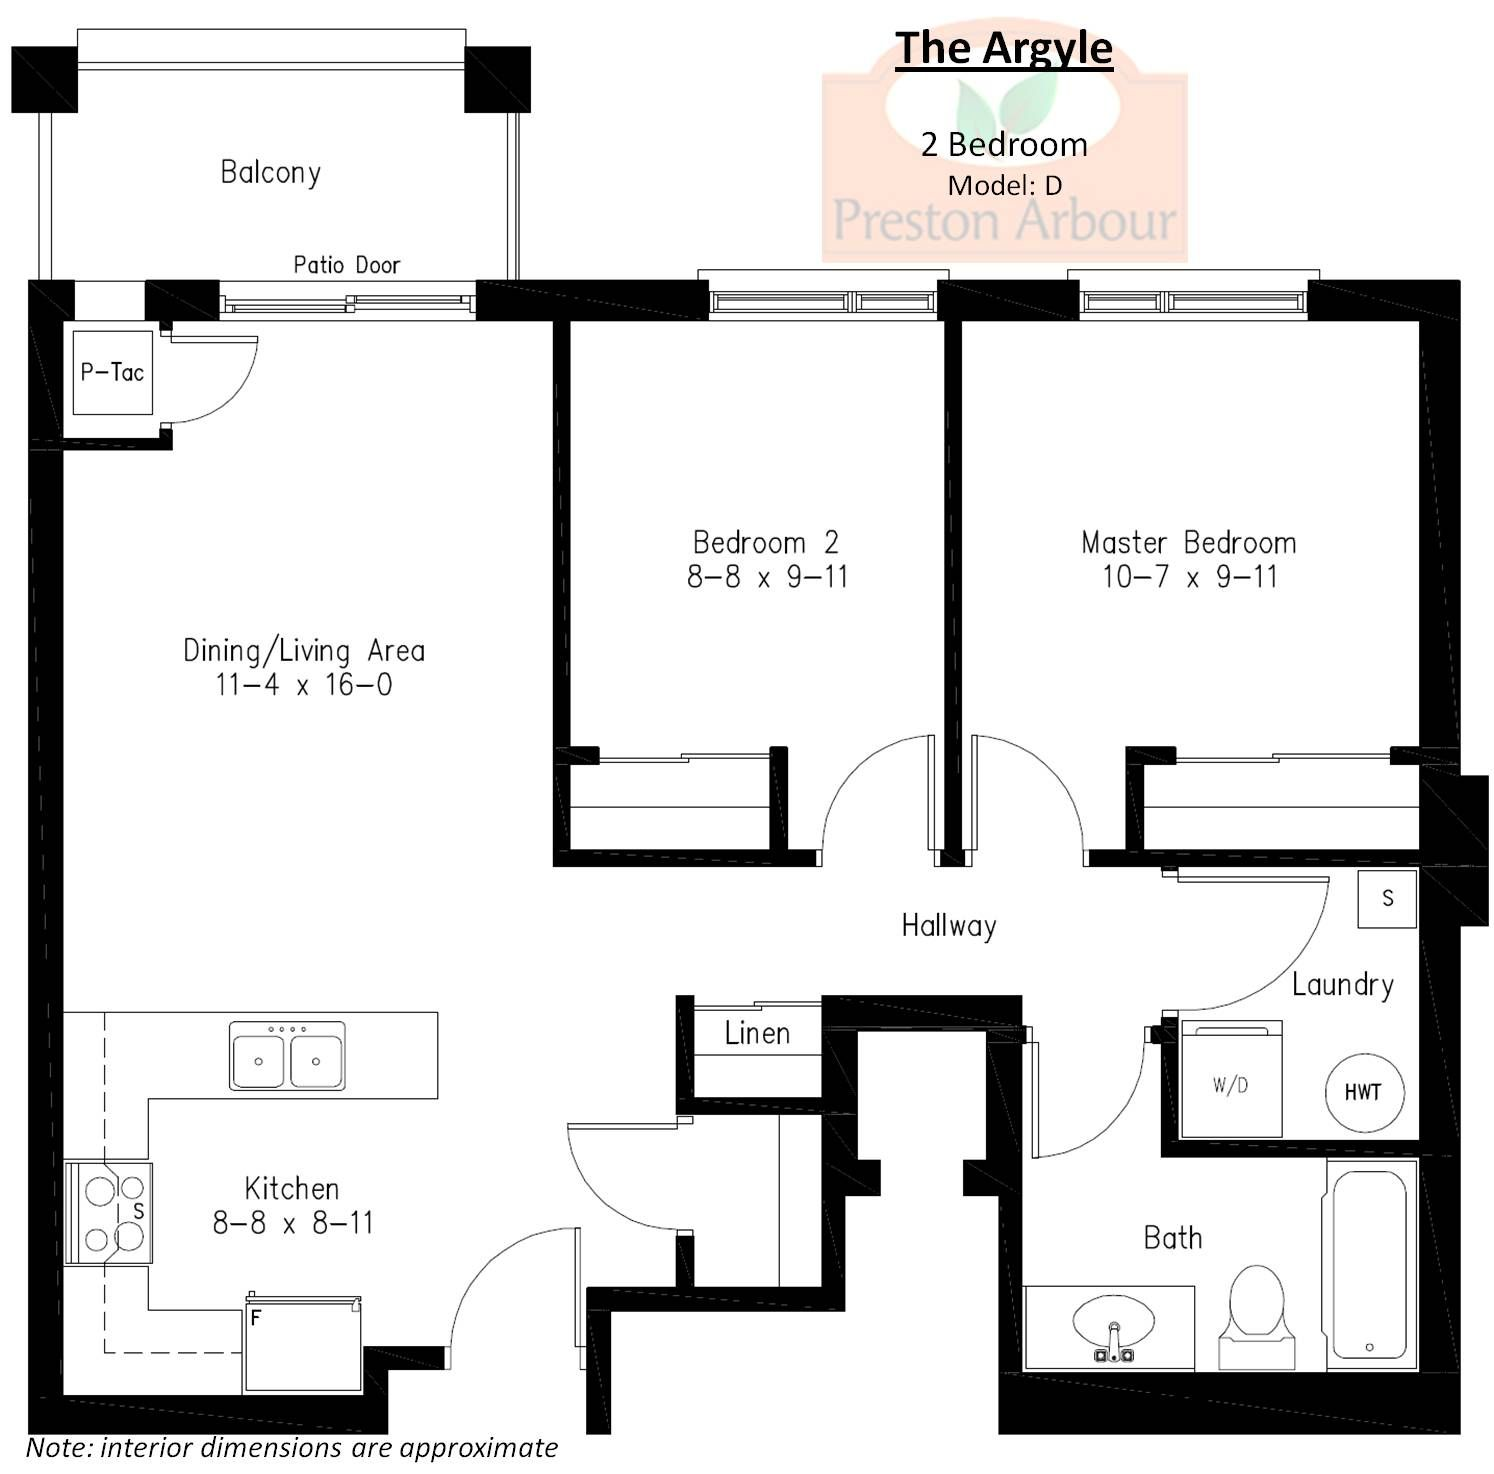 Nice Design House Floor Plans Online Free Part - 5: Free House Floor Plan Design Software, Blueprint Maker Online Free .